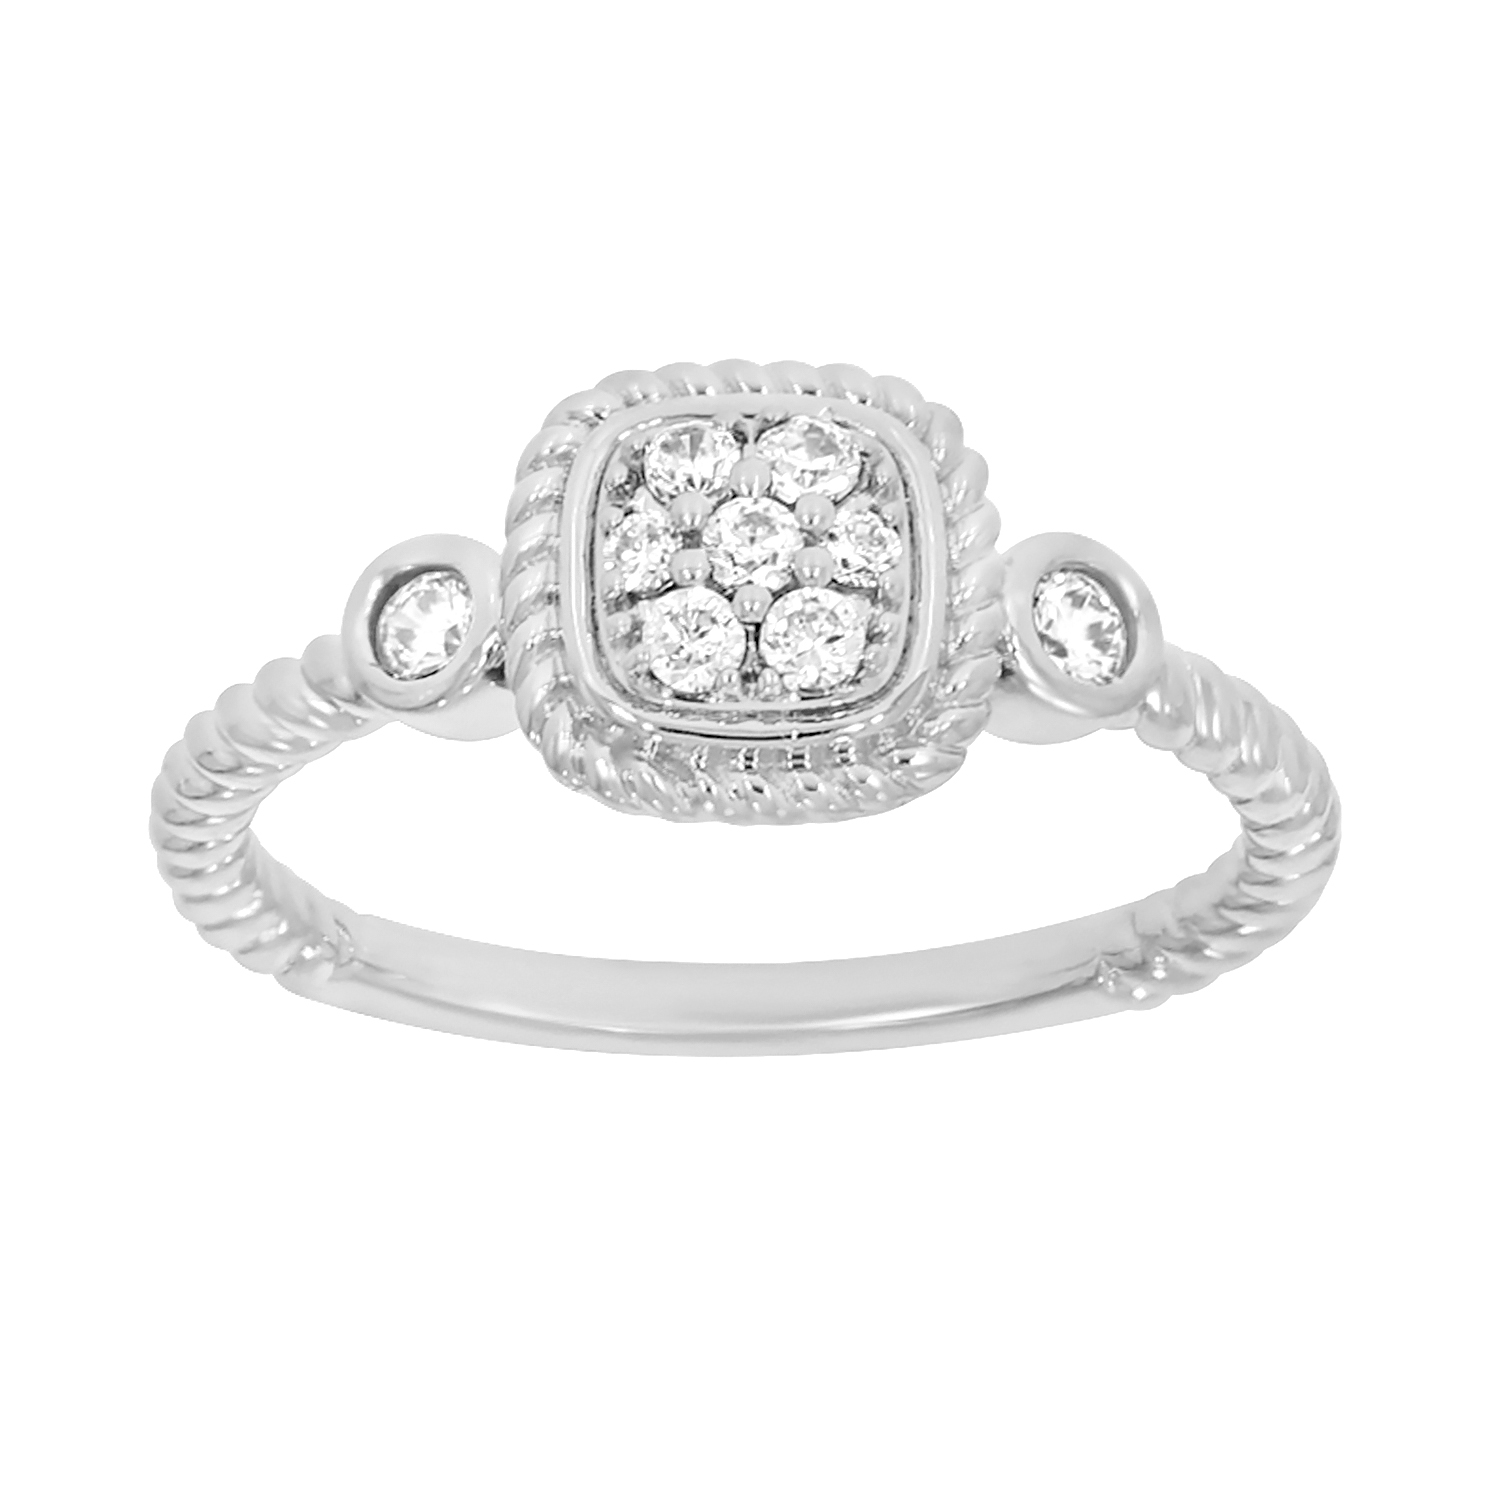 9ct White Gold Cushion Shape Diamond Ring with 9 Briliiant Diamonds